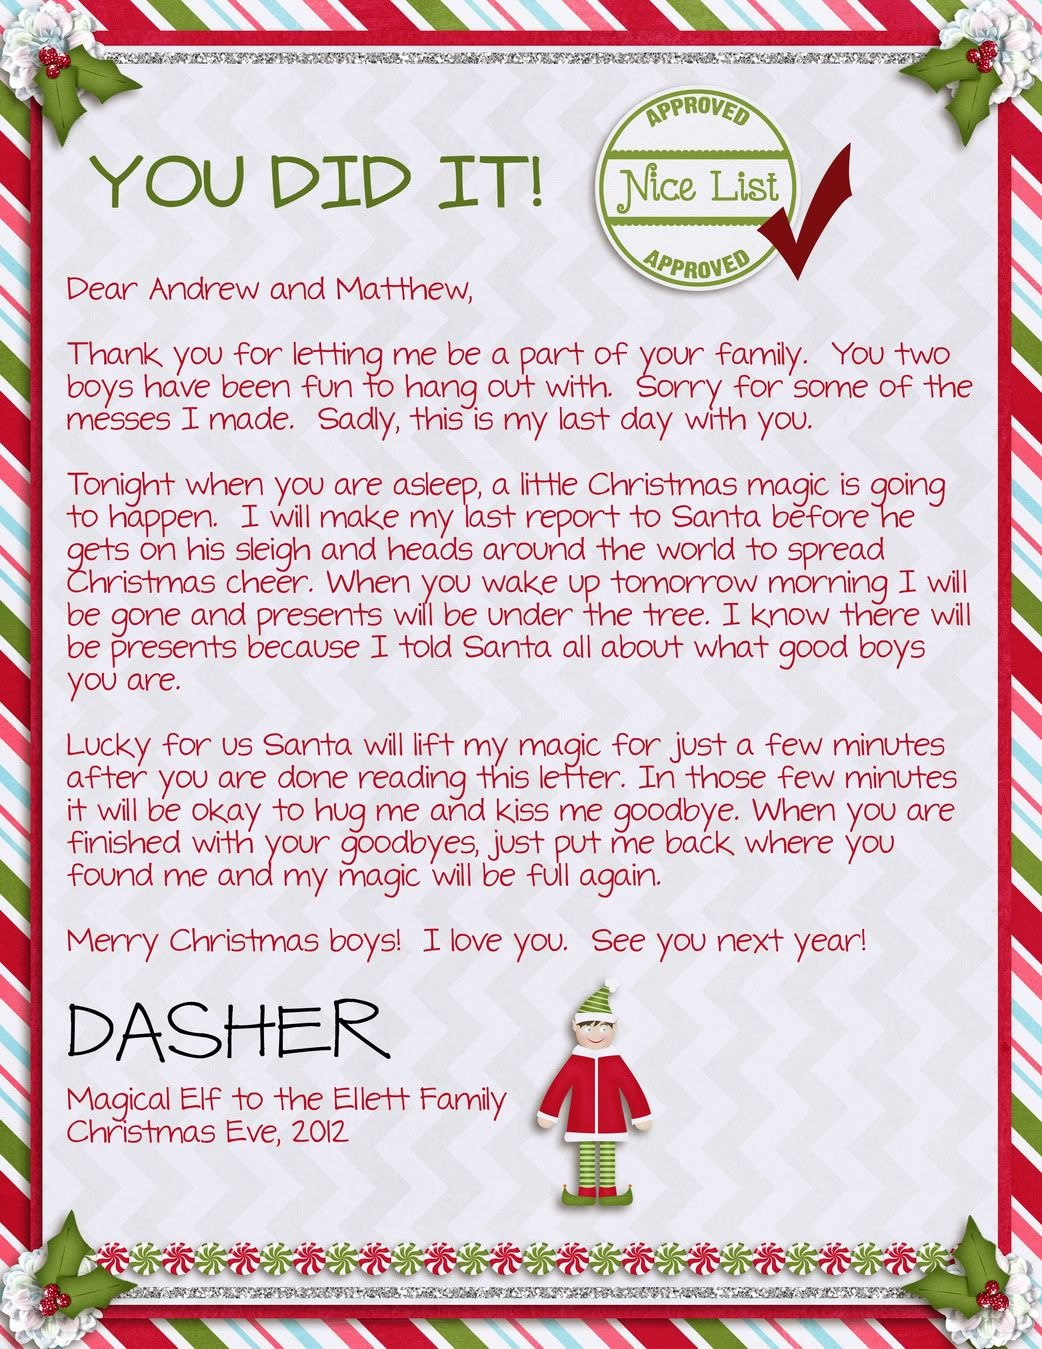 Elf On The Shelf Welcome Letter  Wasn T Quite Sure What To Expect Throughout Goodbye Letter From Elf On The Shelf Template